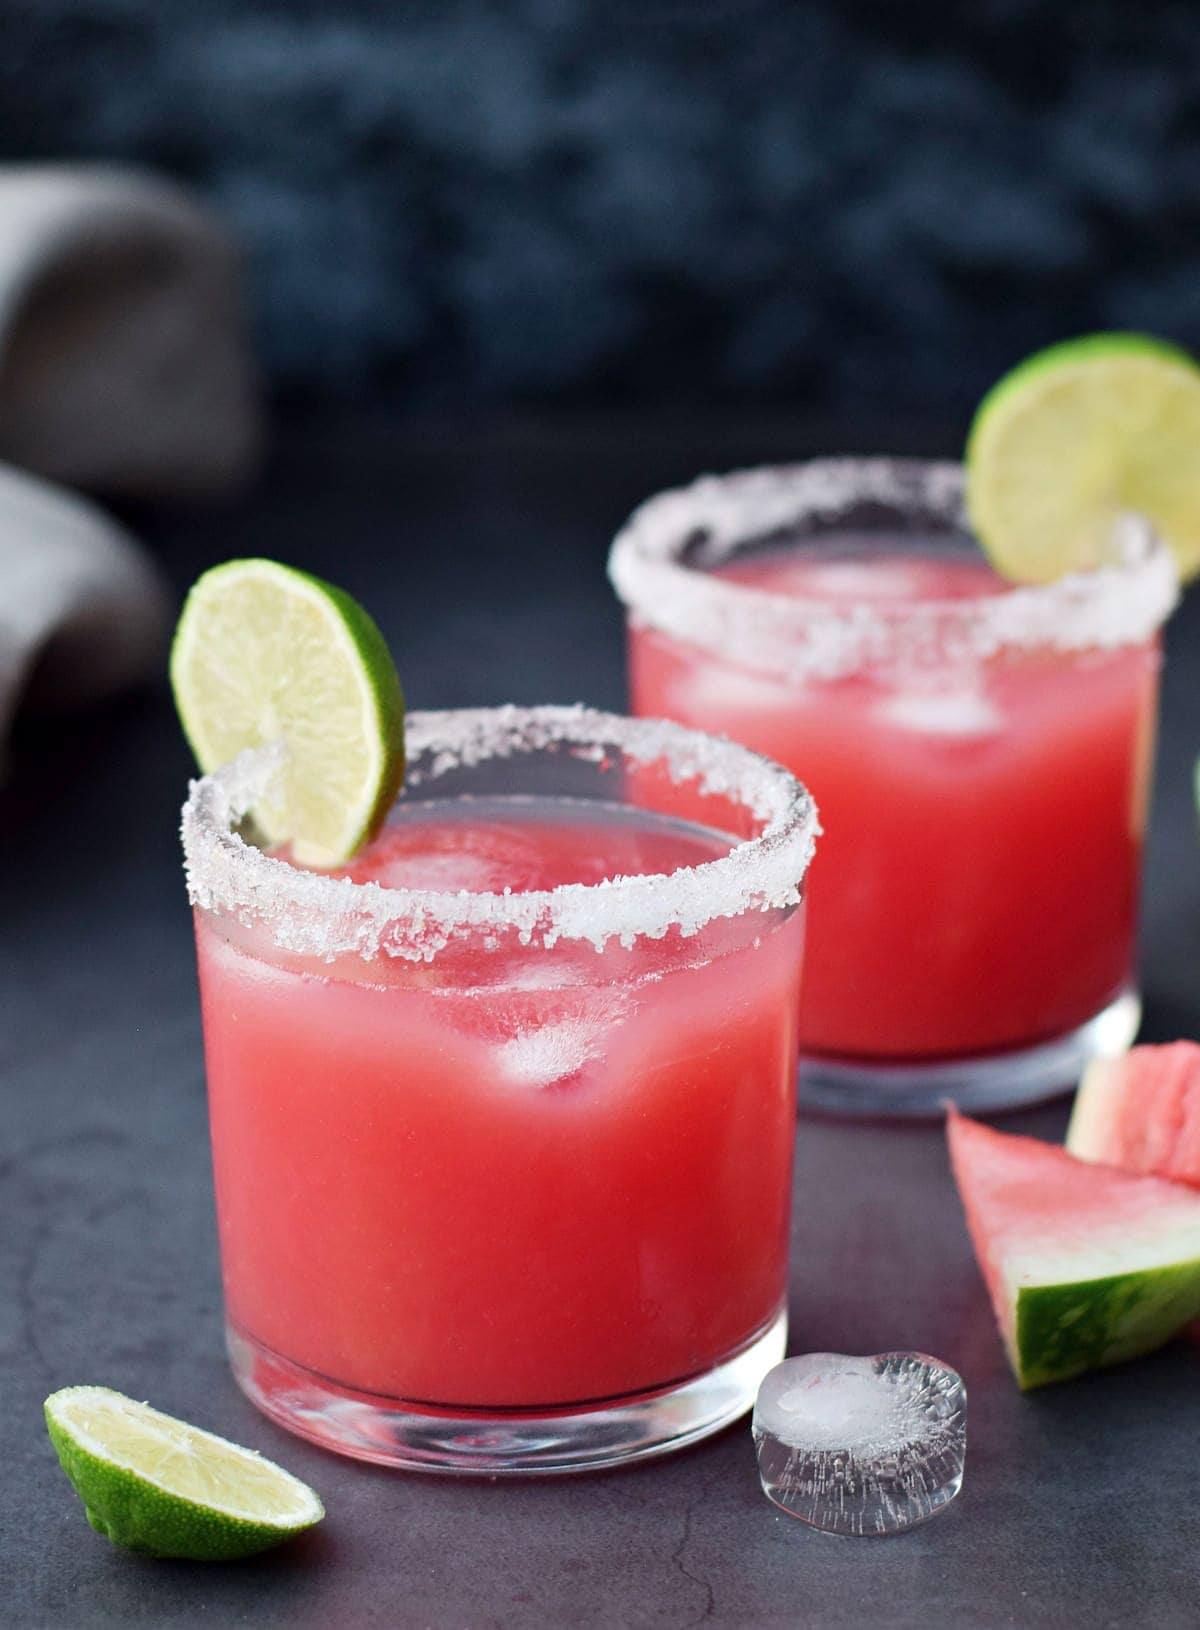 2 glasses of tequila cocktail with watermelons, limes, and salt rim